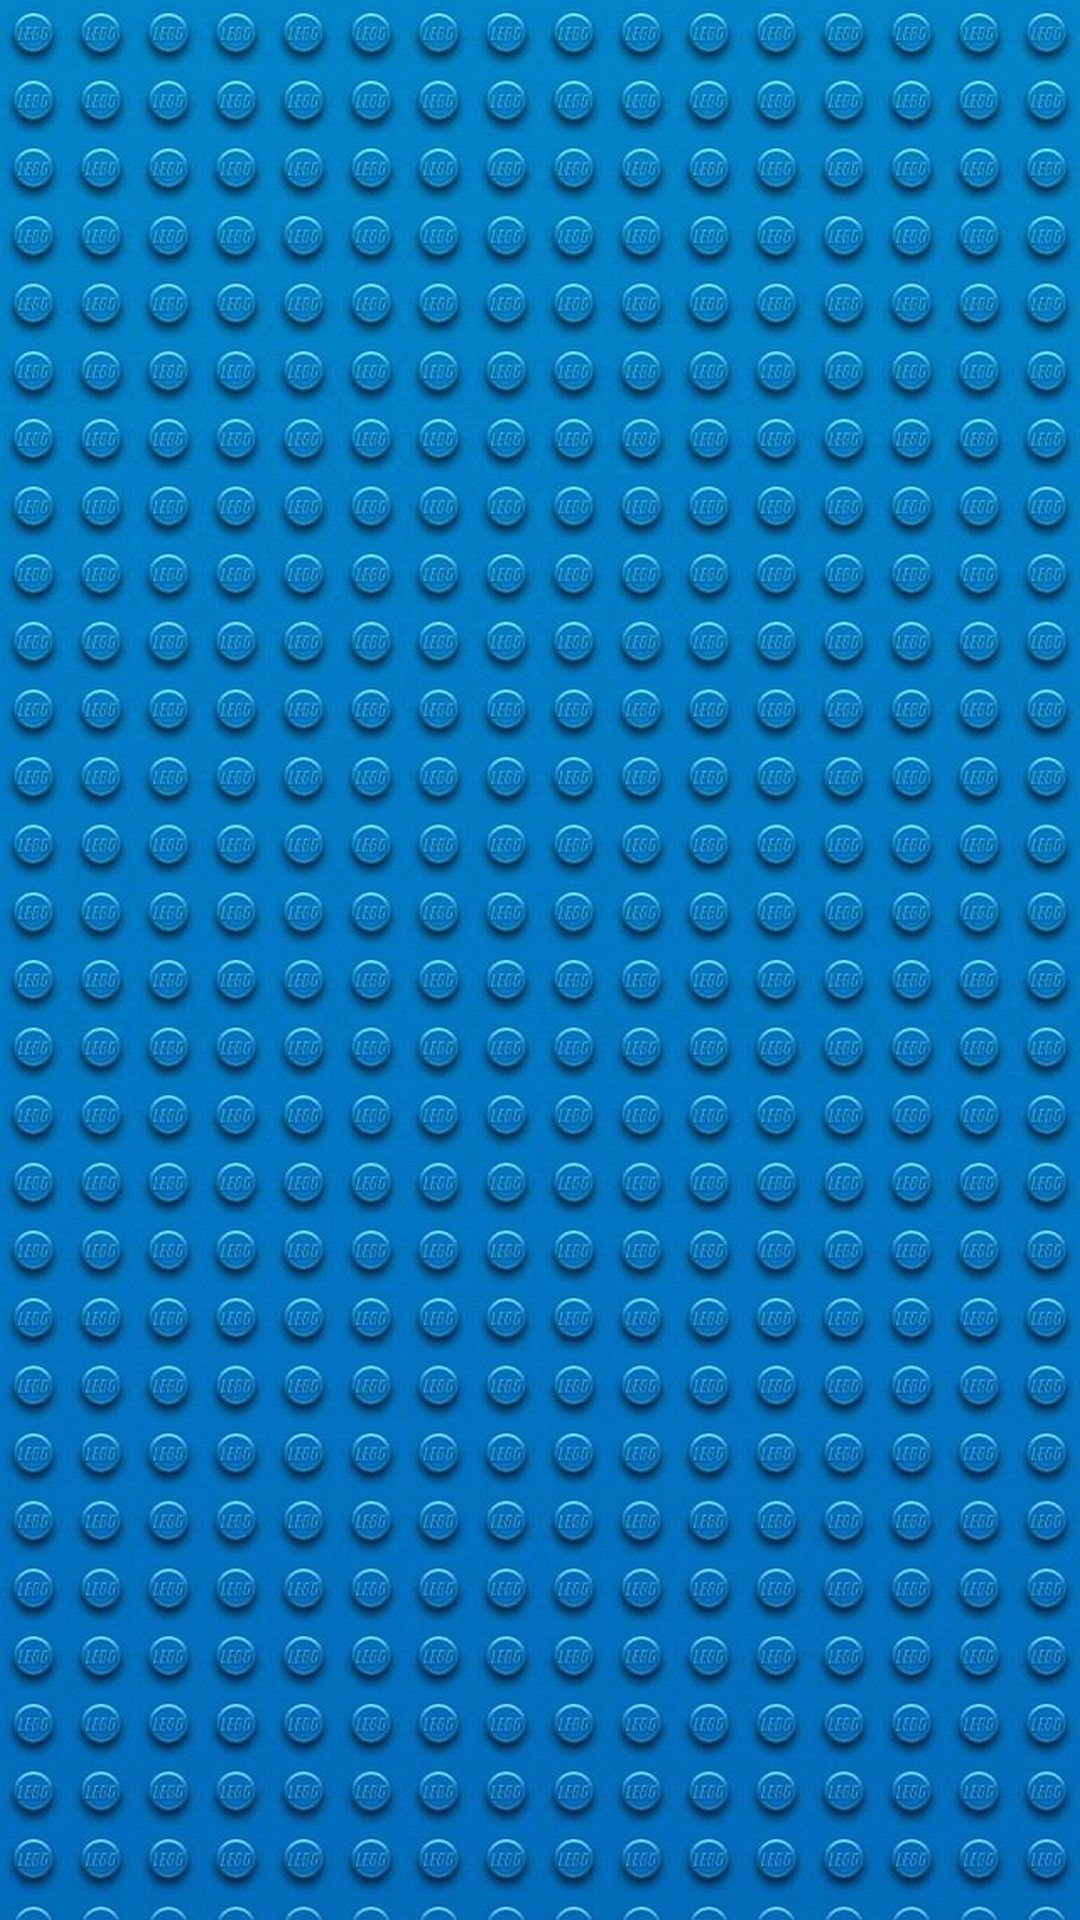 1080x1920 Blue Lego background. Tap to see more Texture iPhone Wallpapers.